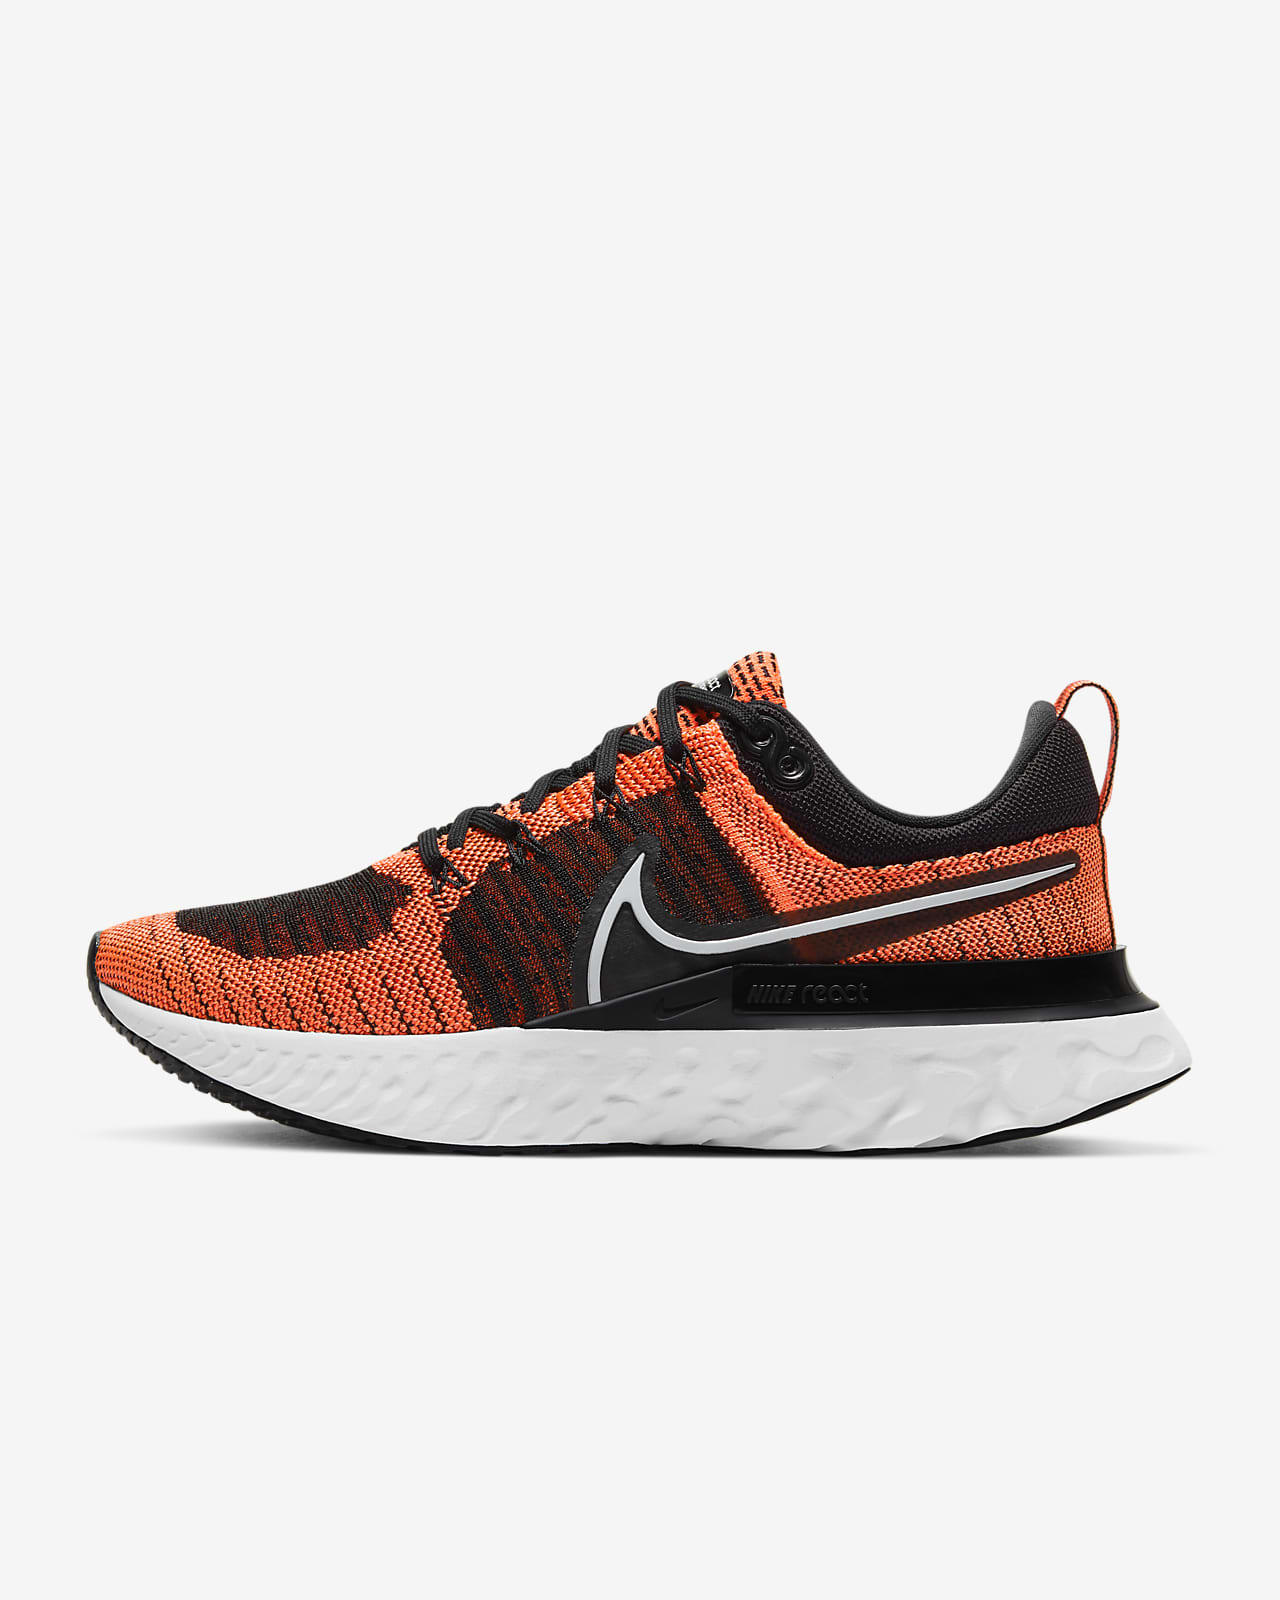 Nike React Infinity Run Flyknit 2 Women's Running Shoe